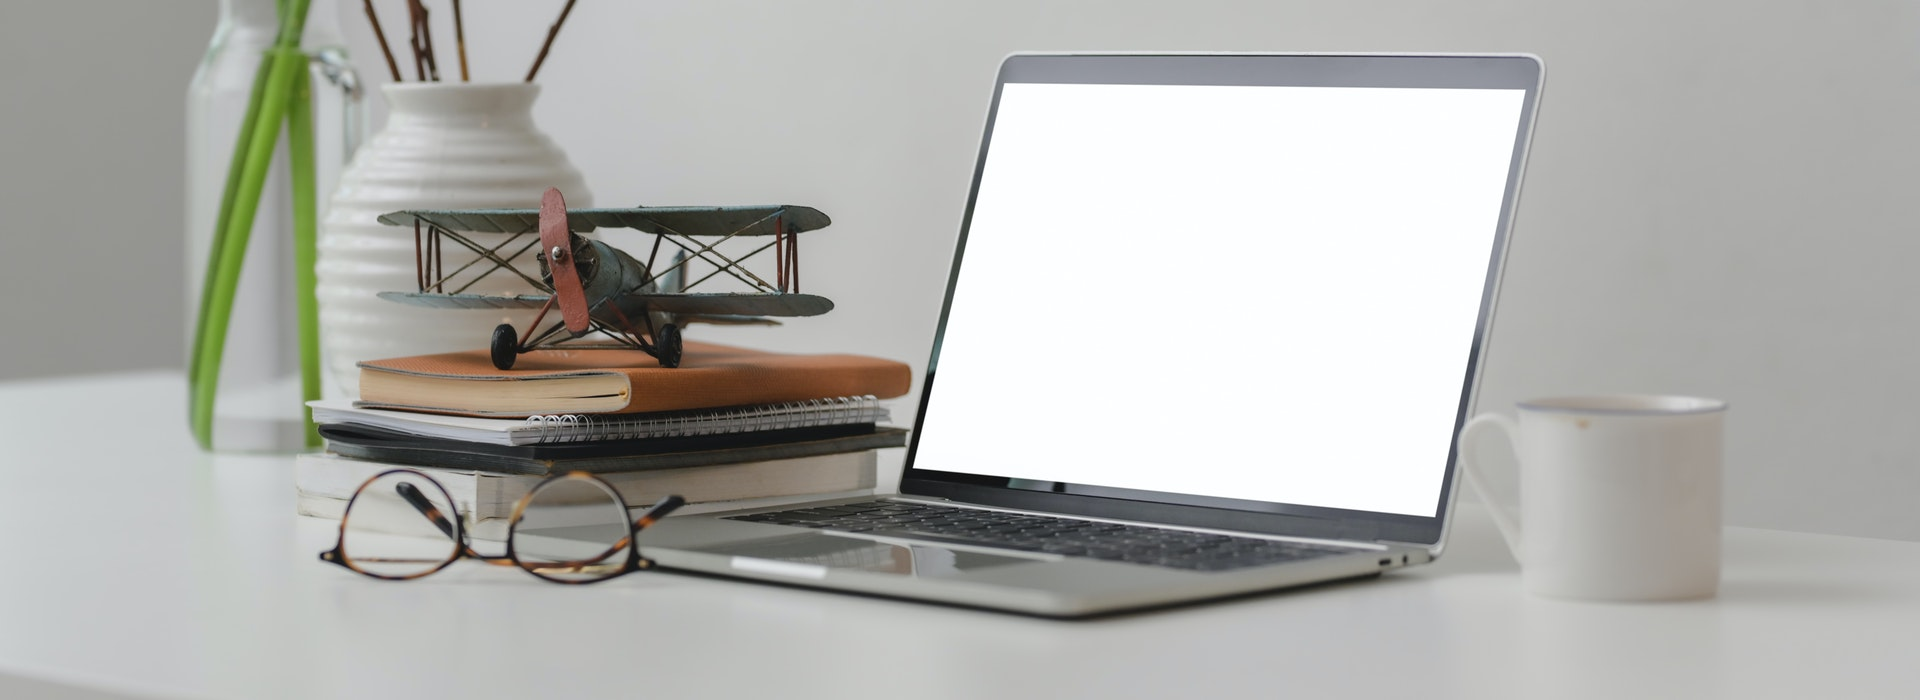 Photo of a latop and books on desk